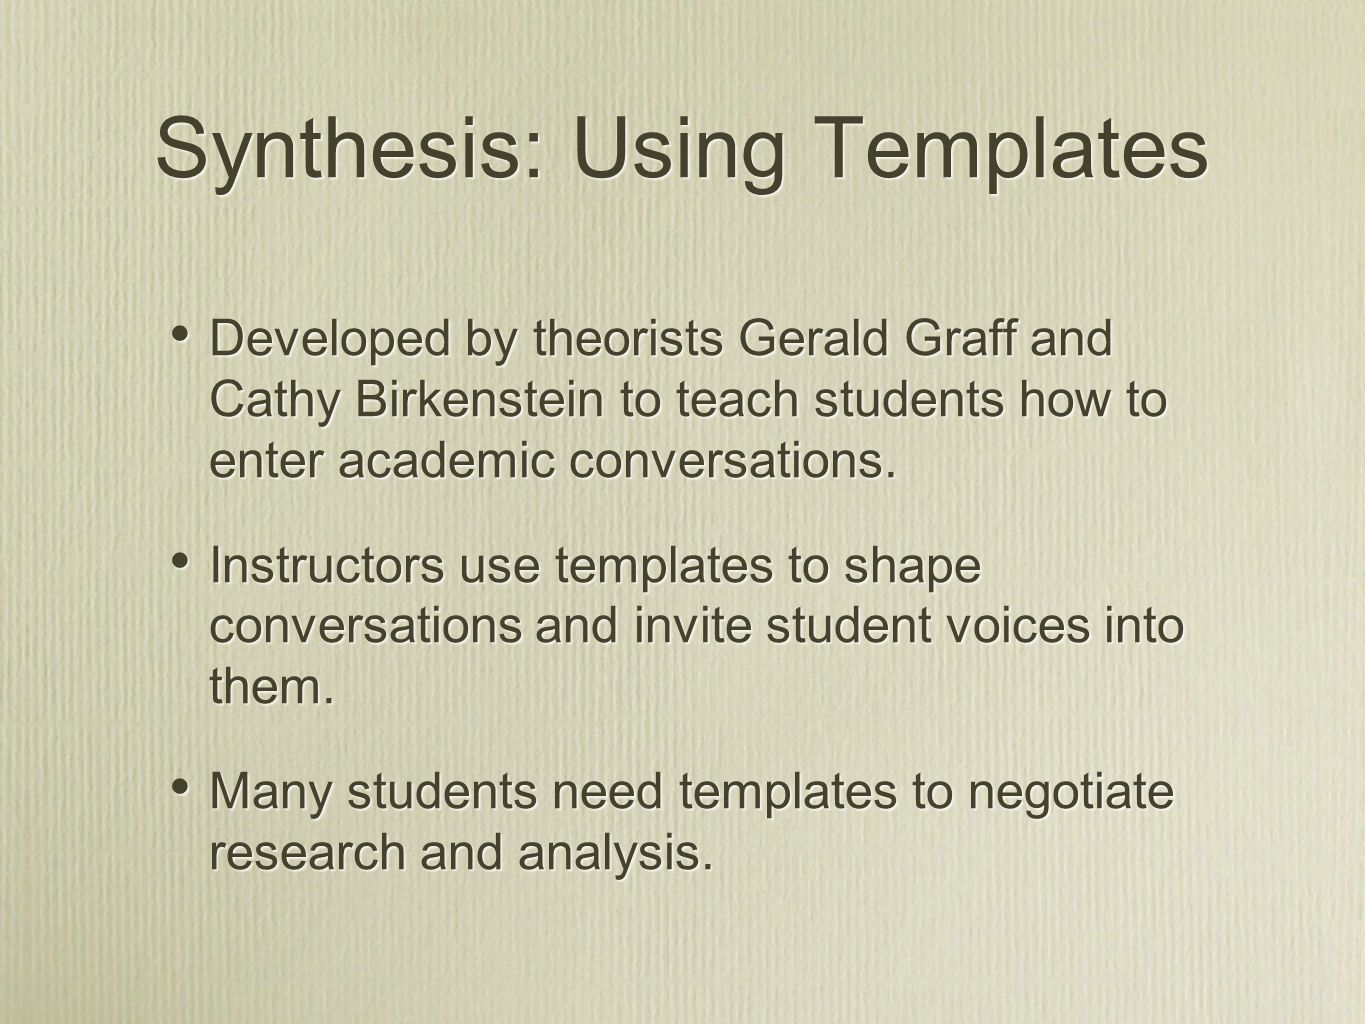 Synthesis: Using Templates Developed by theorists Gerald Graff and Cathy Birkenstein to teach students how to enter academic conversations.